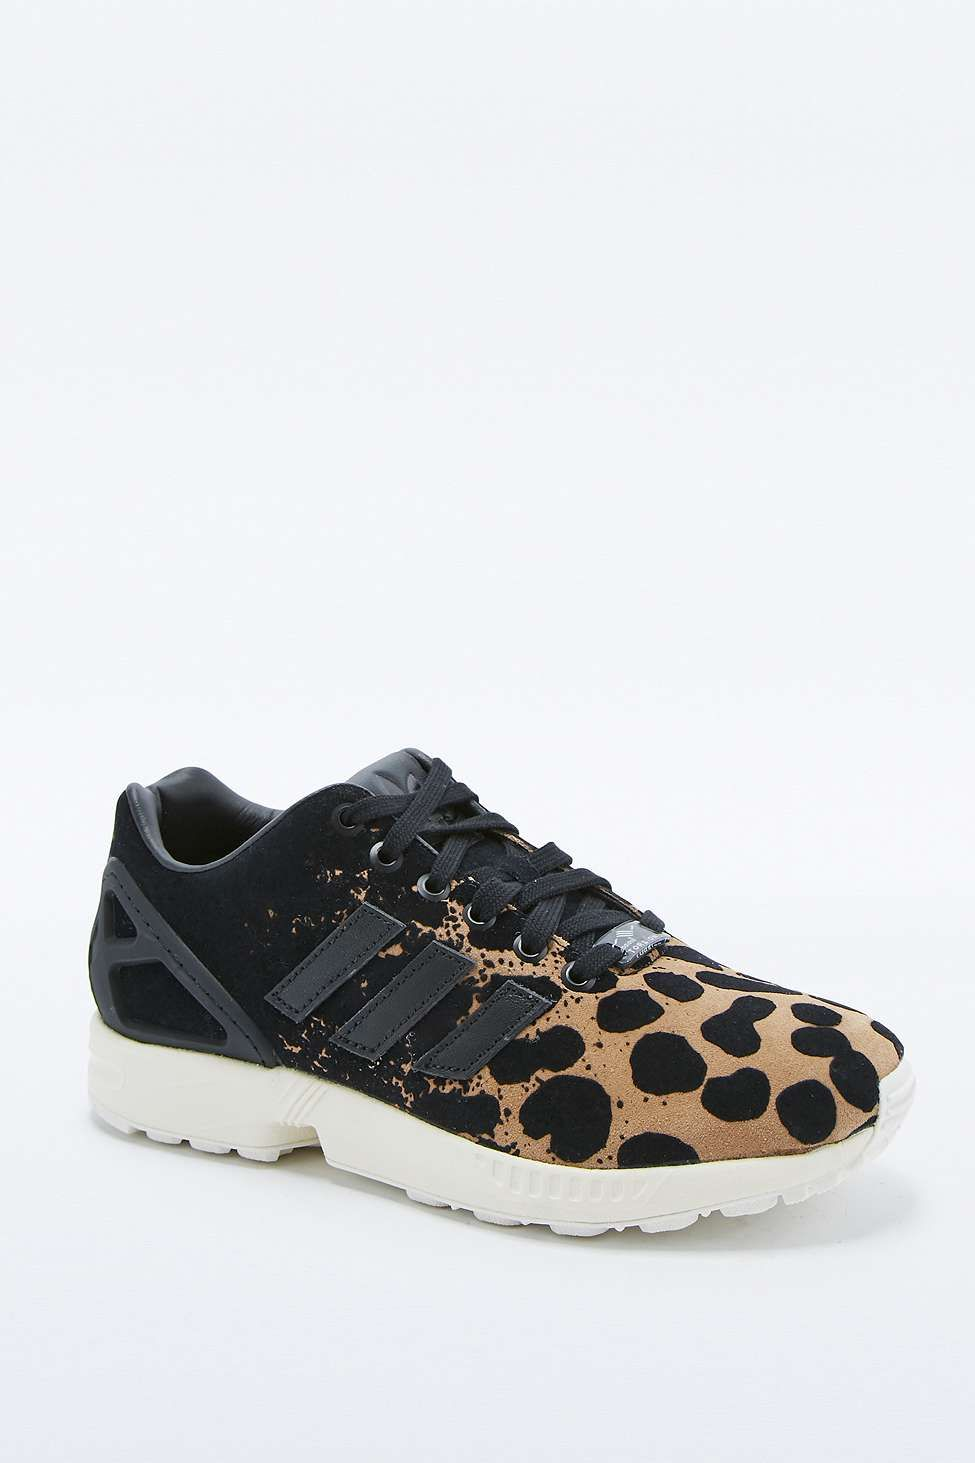 adidas ZX Flux Leopard Trainers | Adidas zx flux leopard